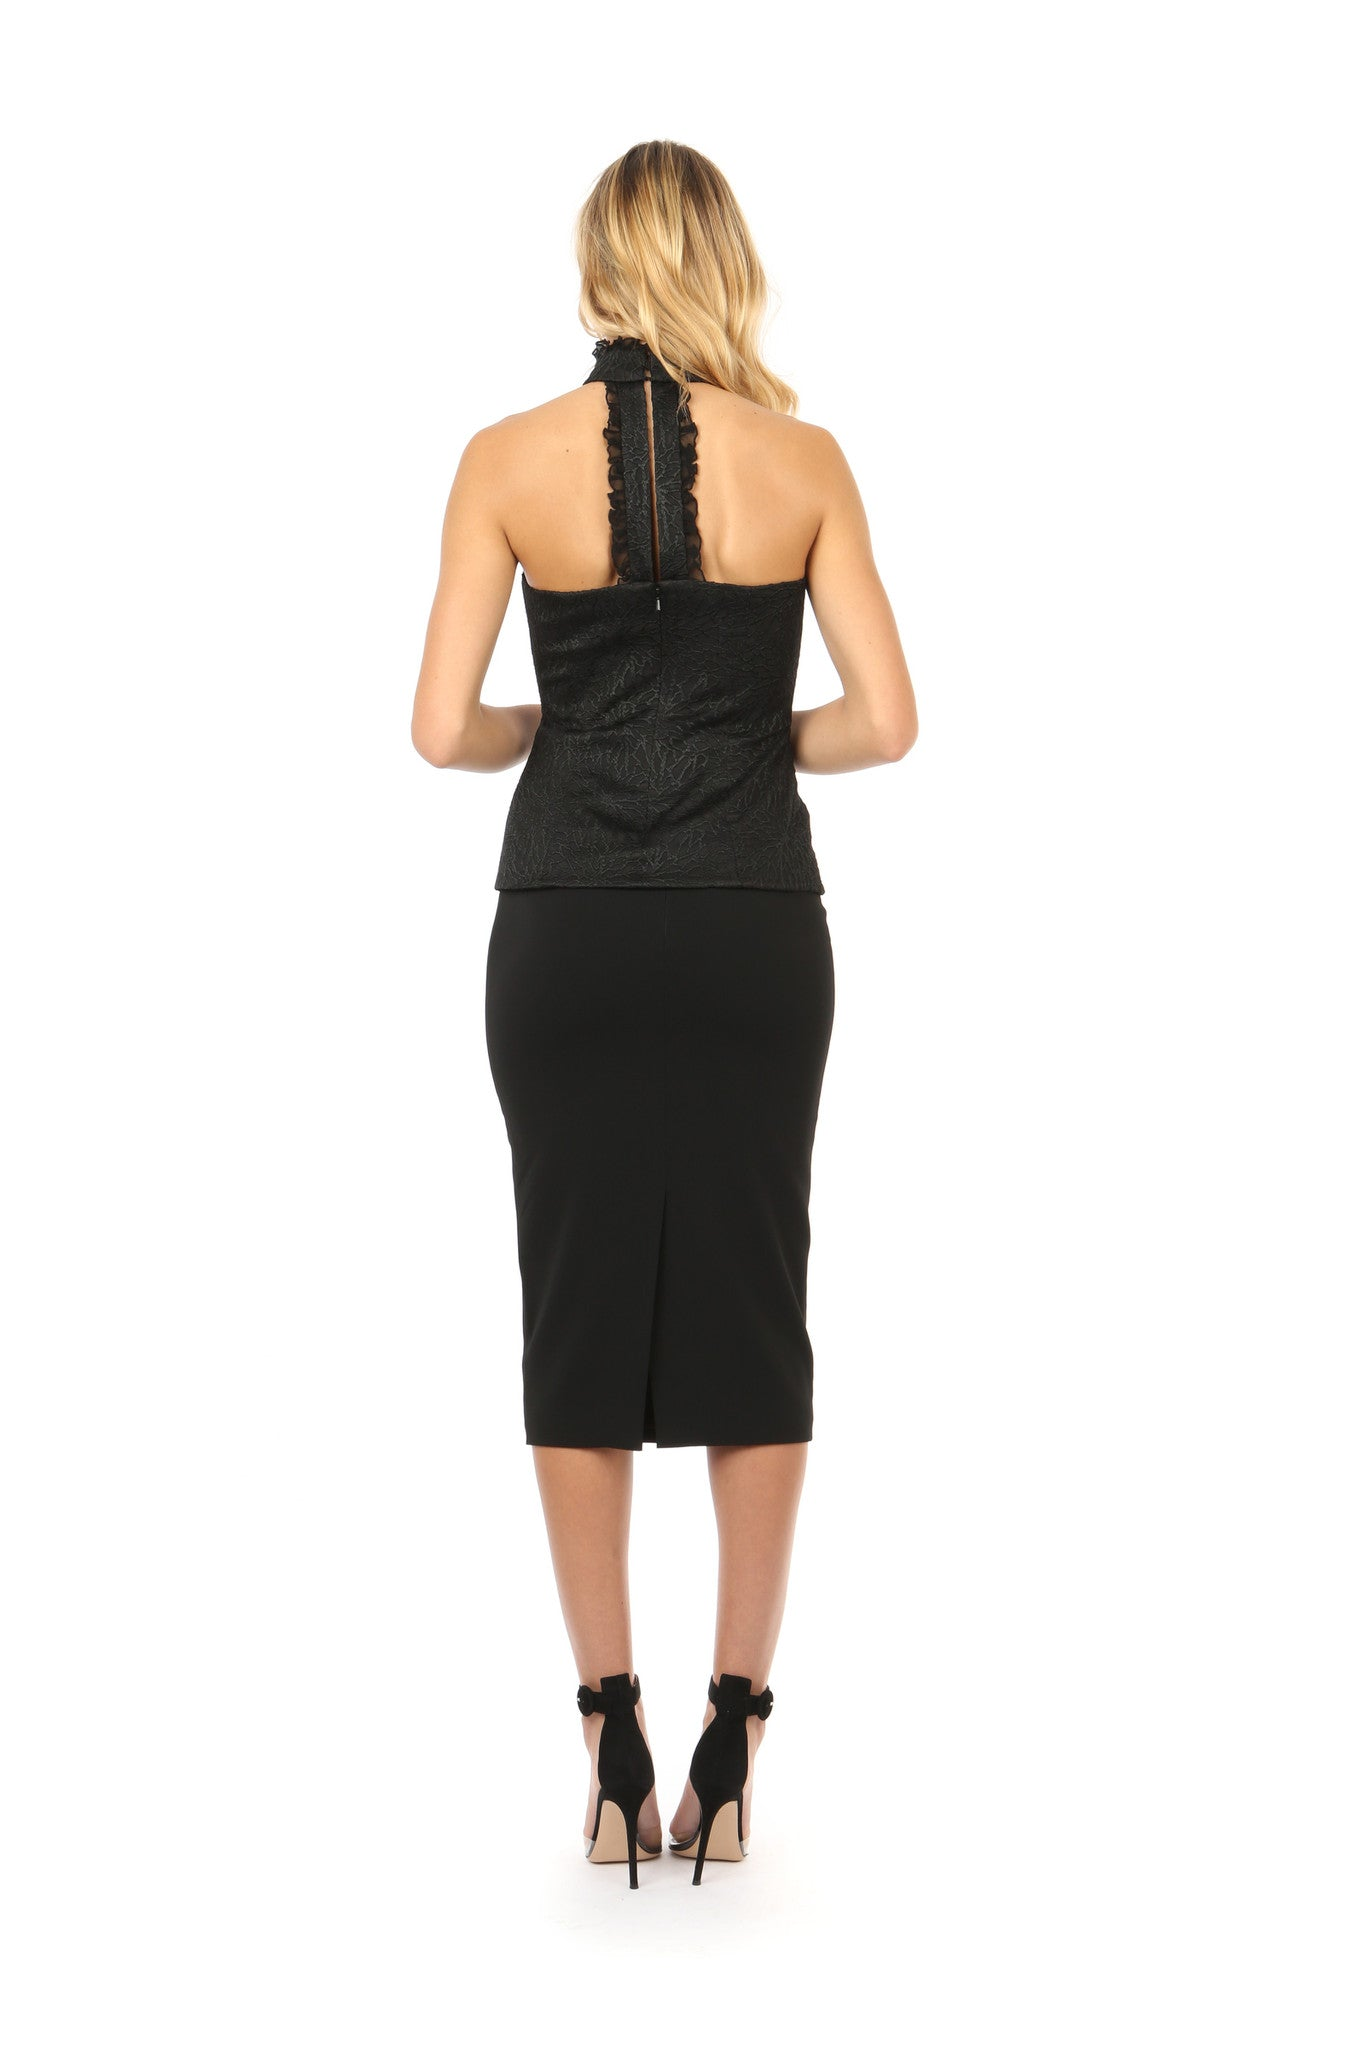 Jay Godfrey Black High-Neck Lace Top - Full Back View